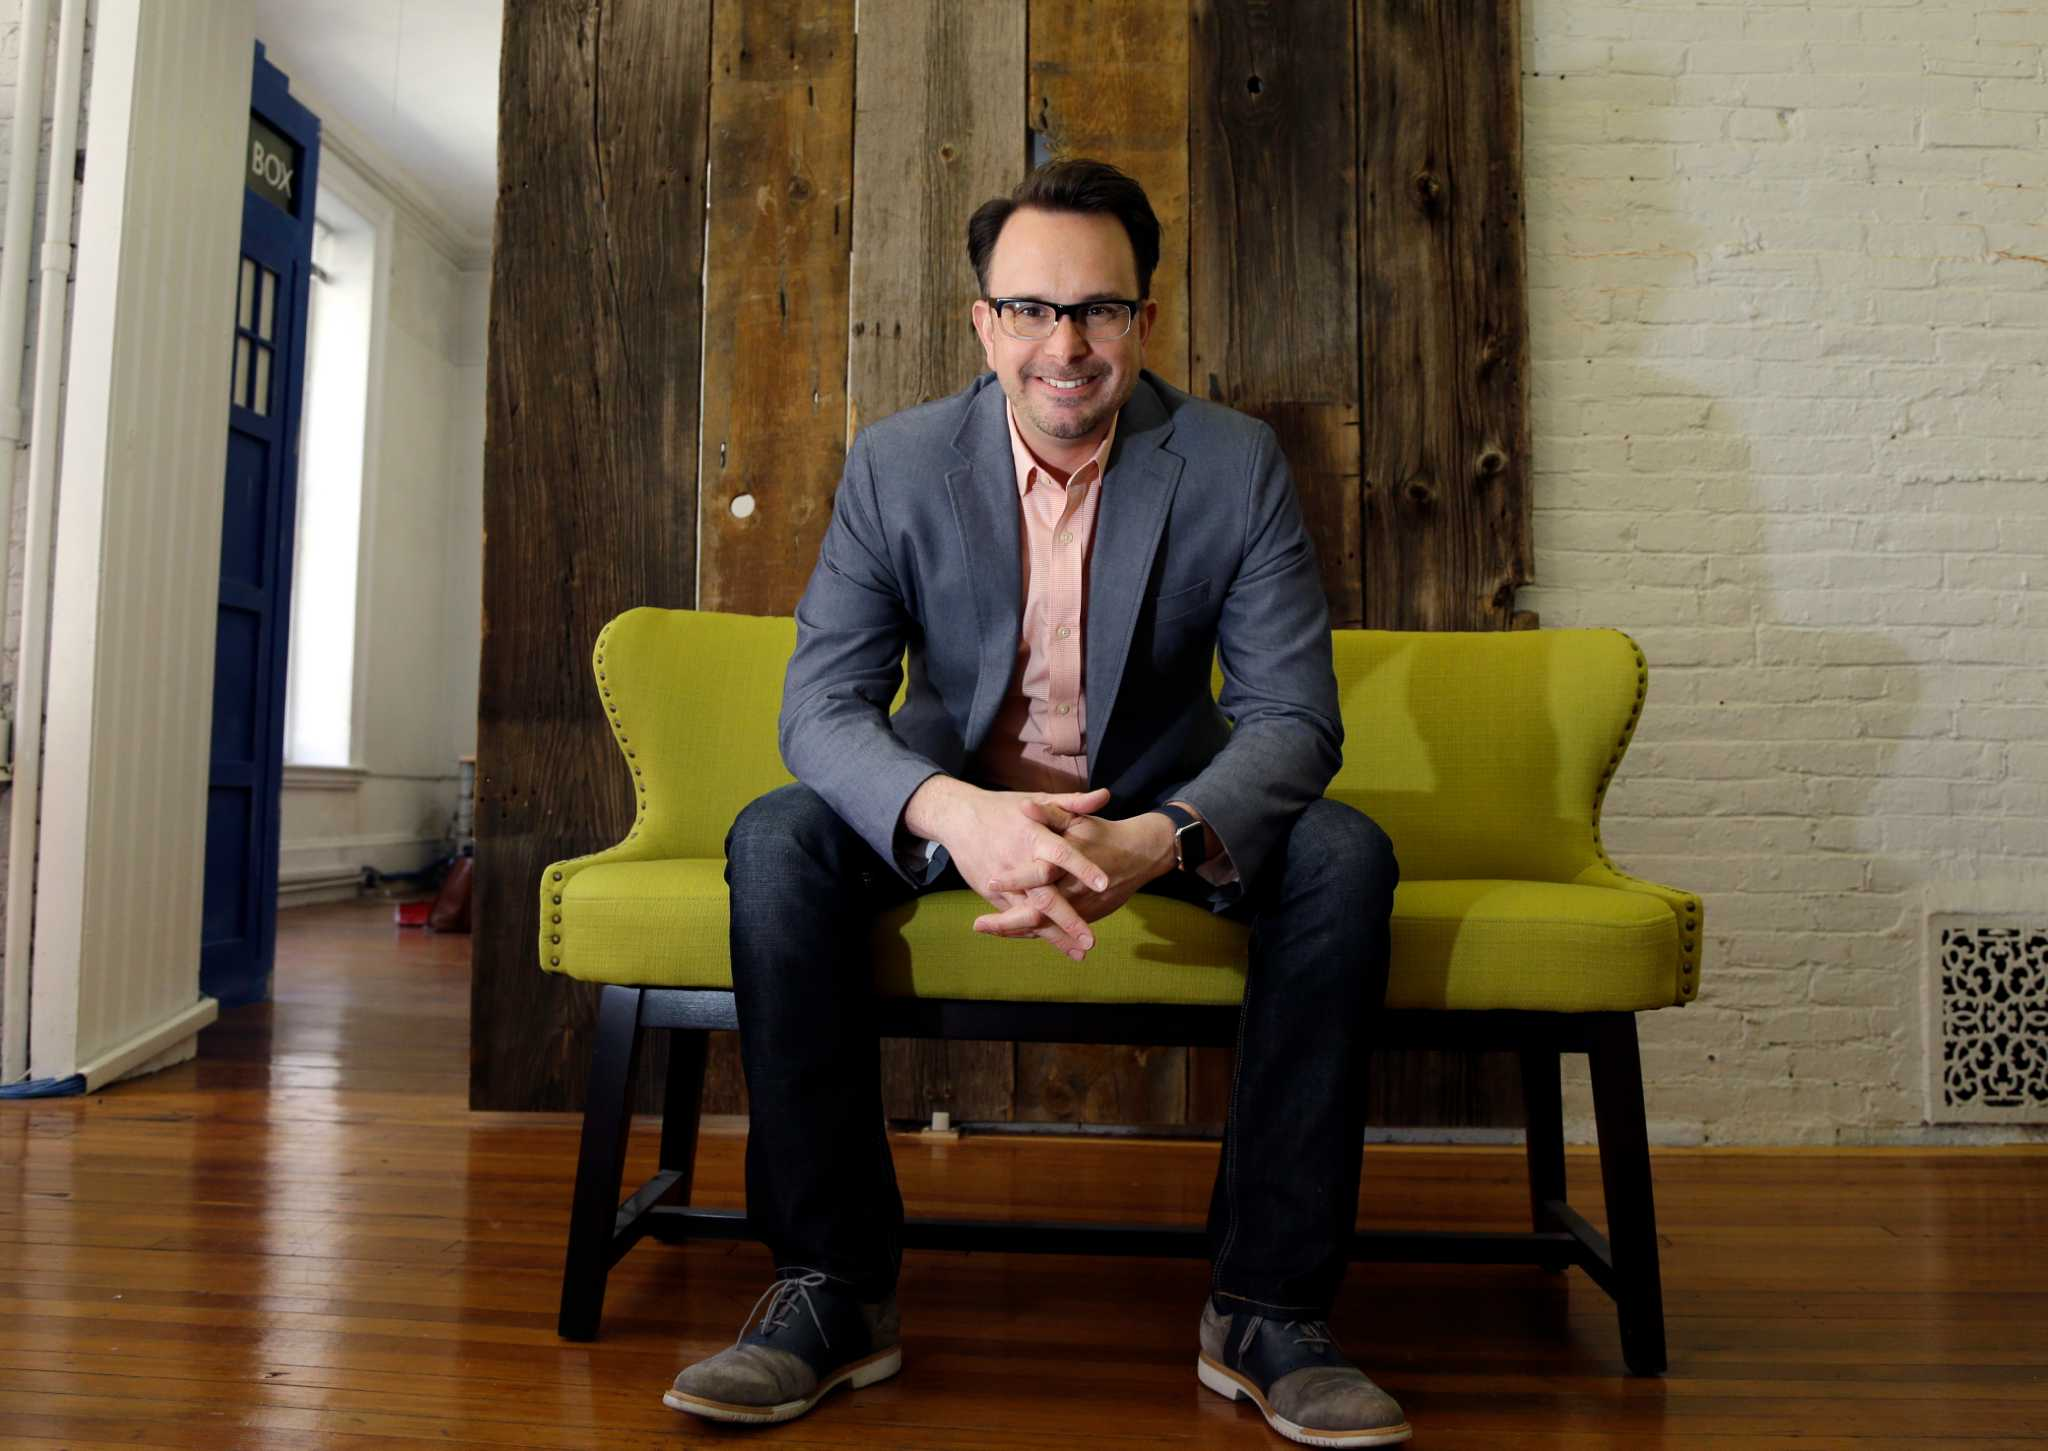 Entrepreneurs want policy specifics from candidates - Houston Chronicle